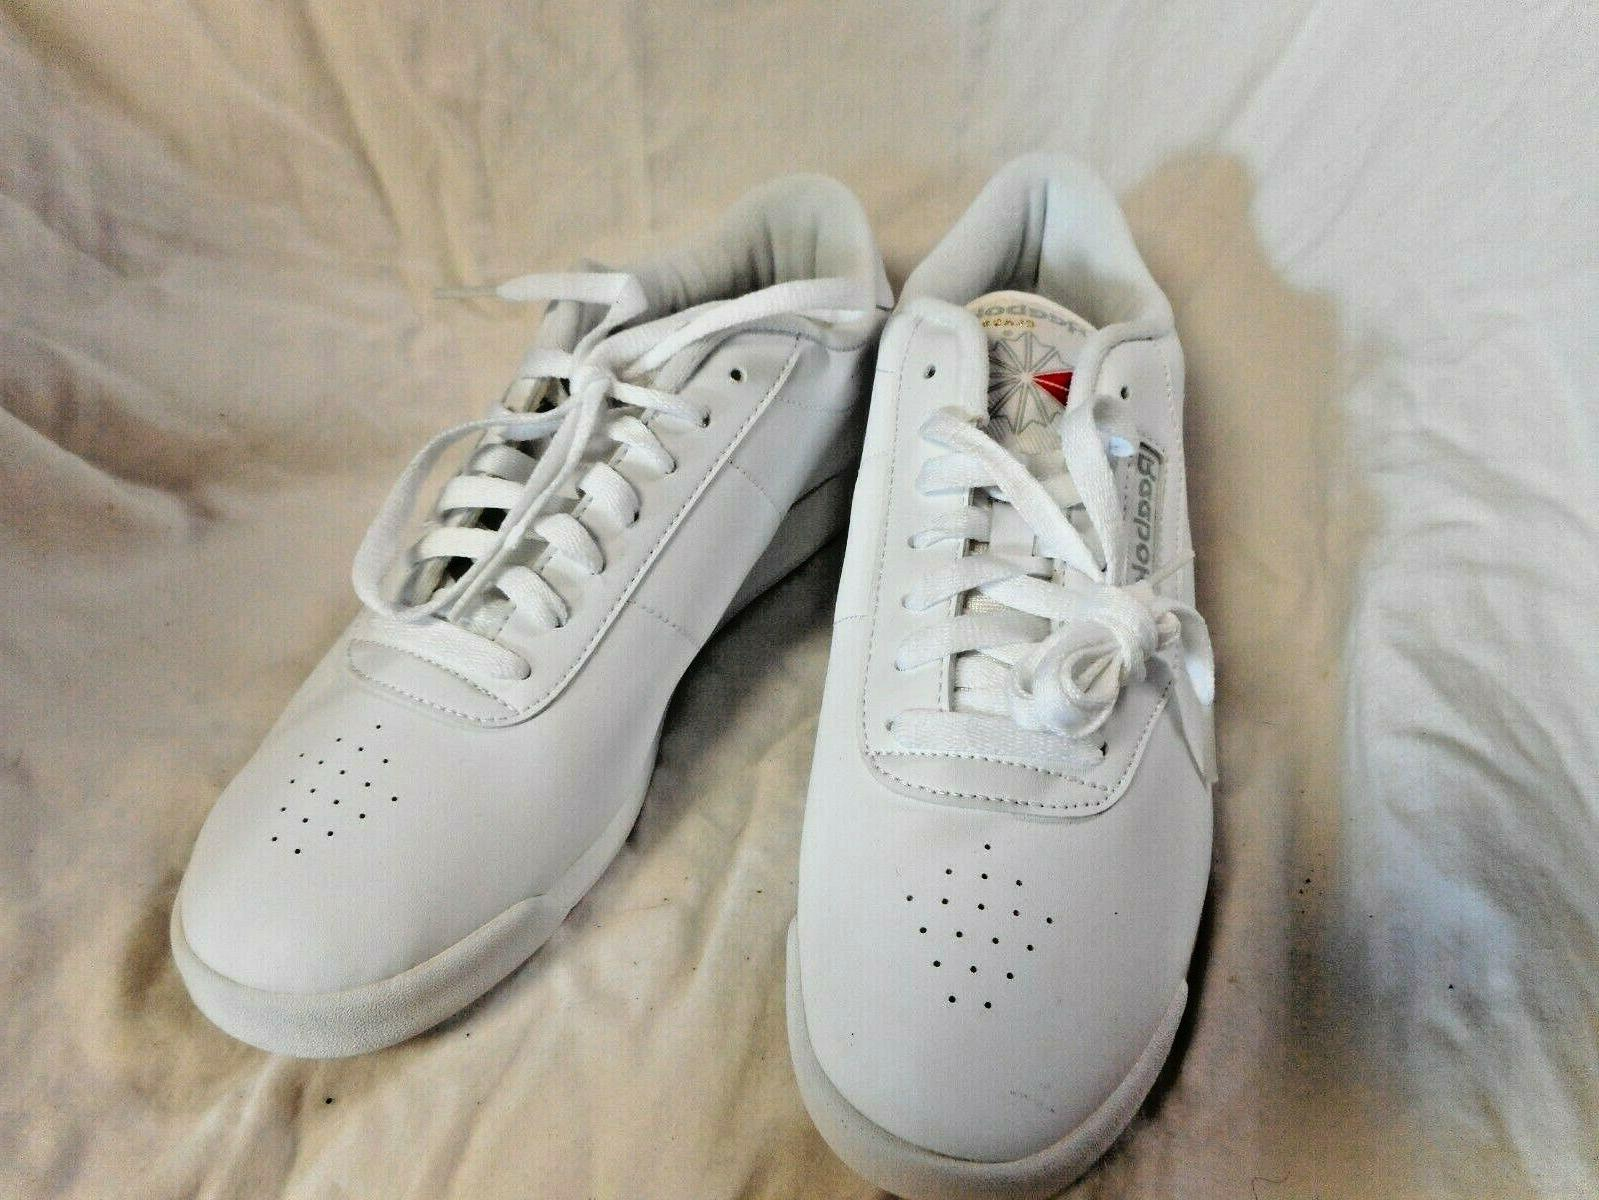 White Tennis Shoes 9.5